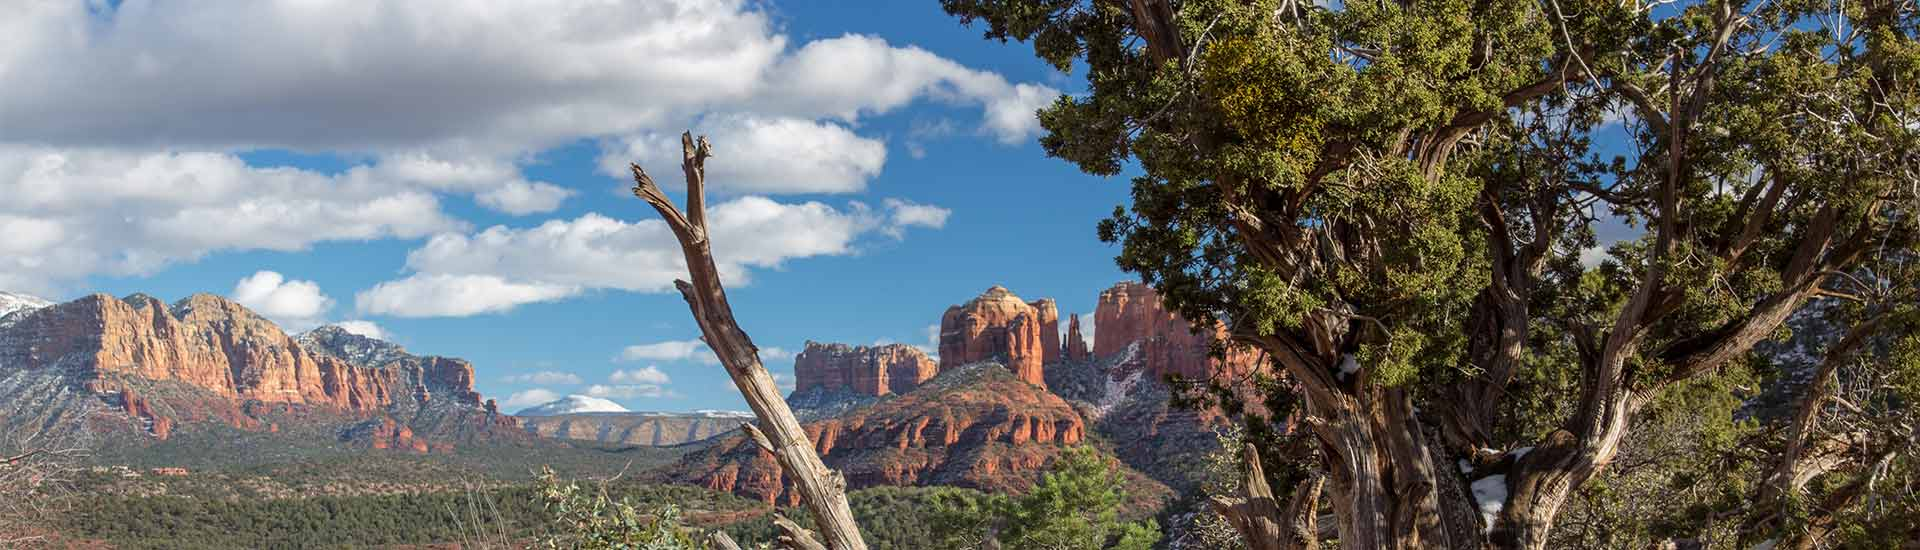 View of Sedona Cathedral Rock through mesquite tree from Upper Red Rock Loop road